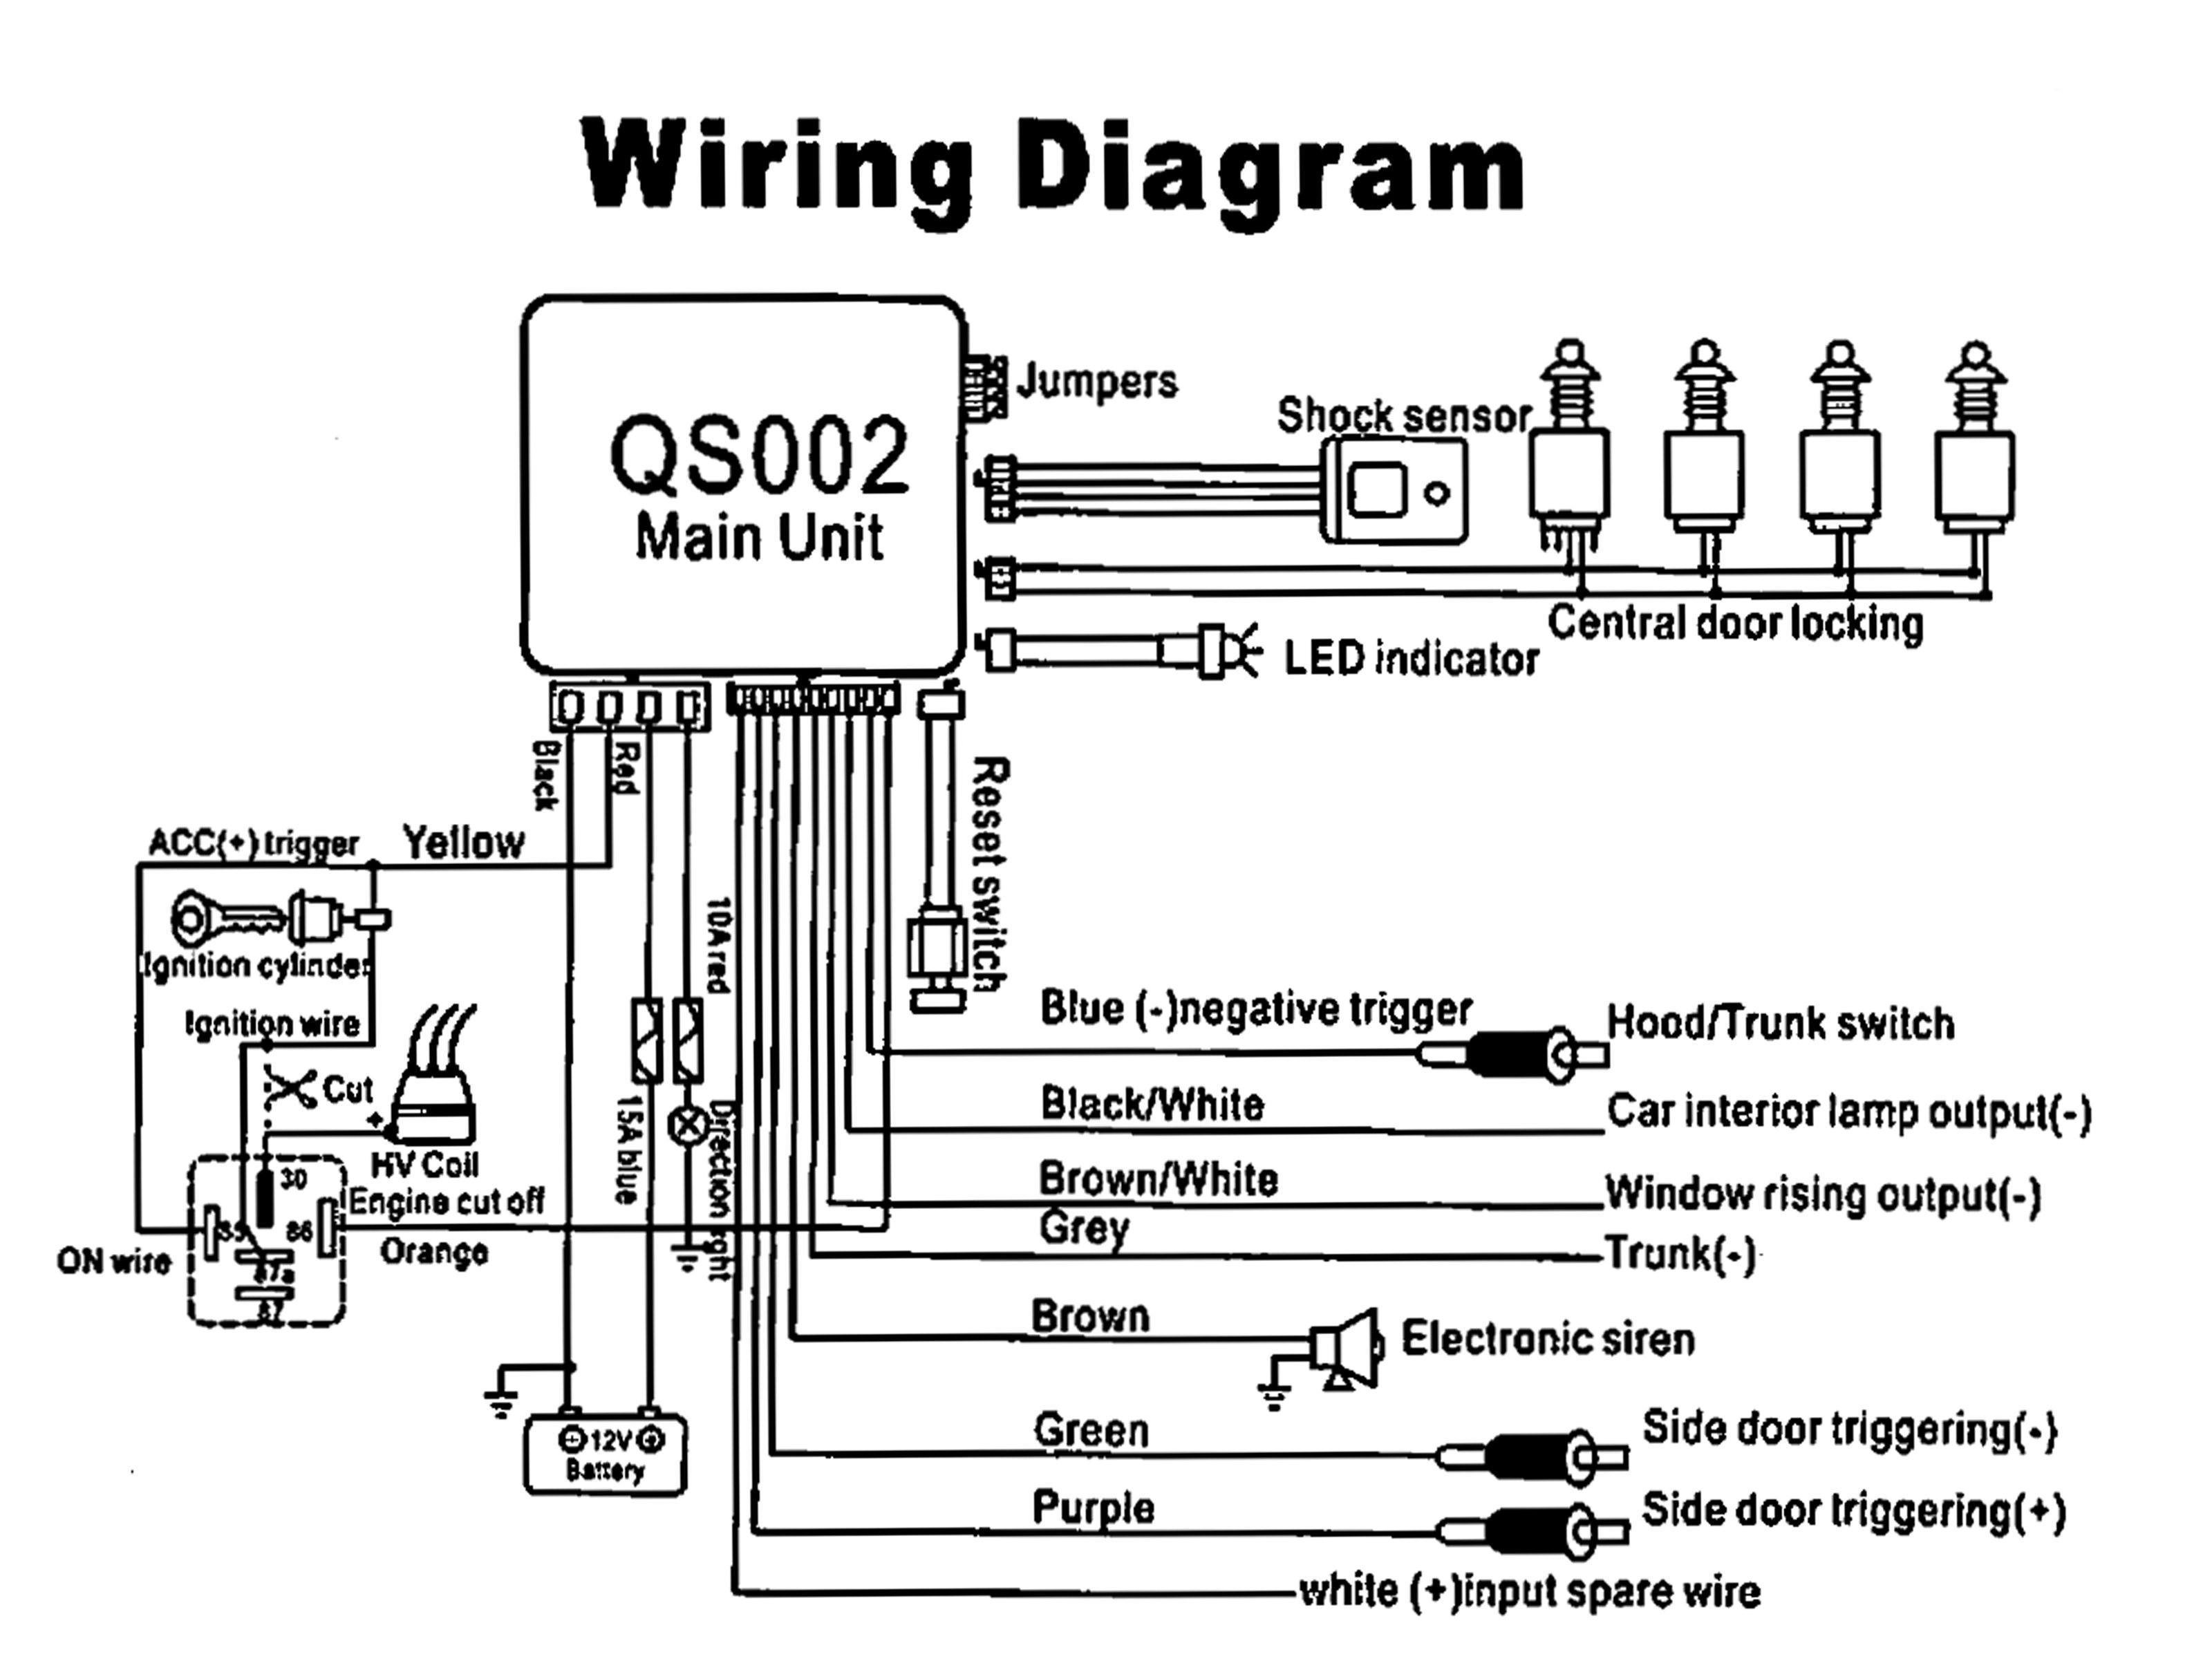 Pleasant Wiring Diagram For Alarm Diagram Data Schema Wiring Cloud Histehirlexornumapkesianilluminateatxorg